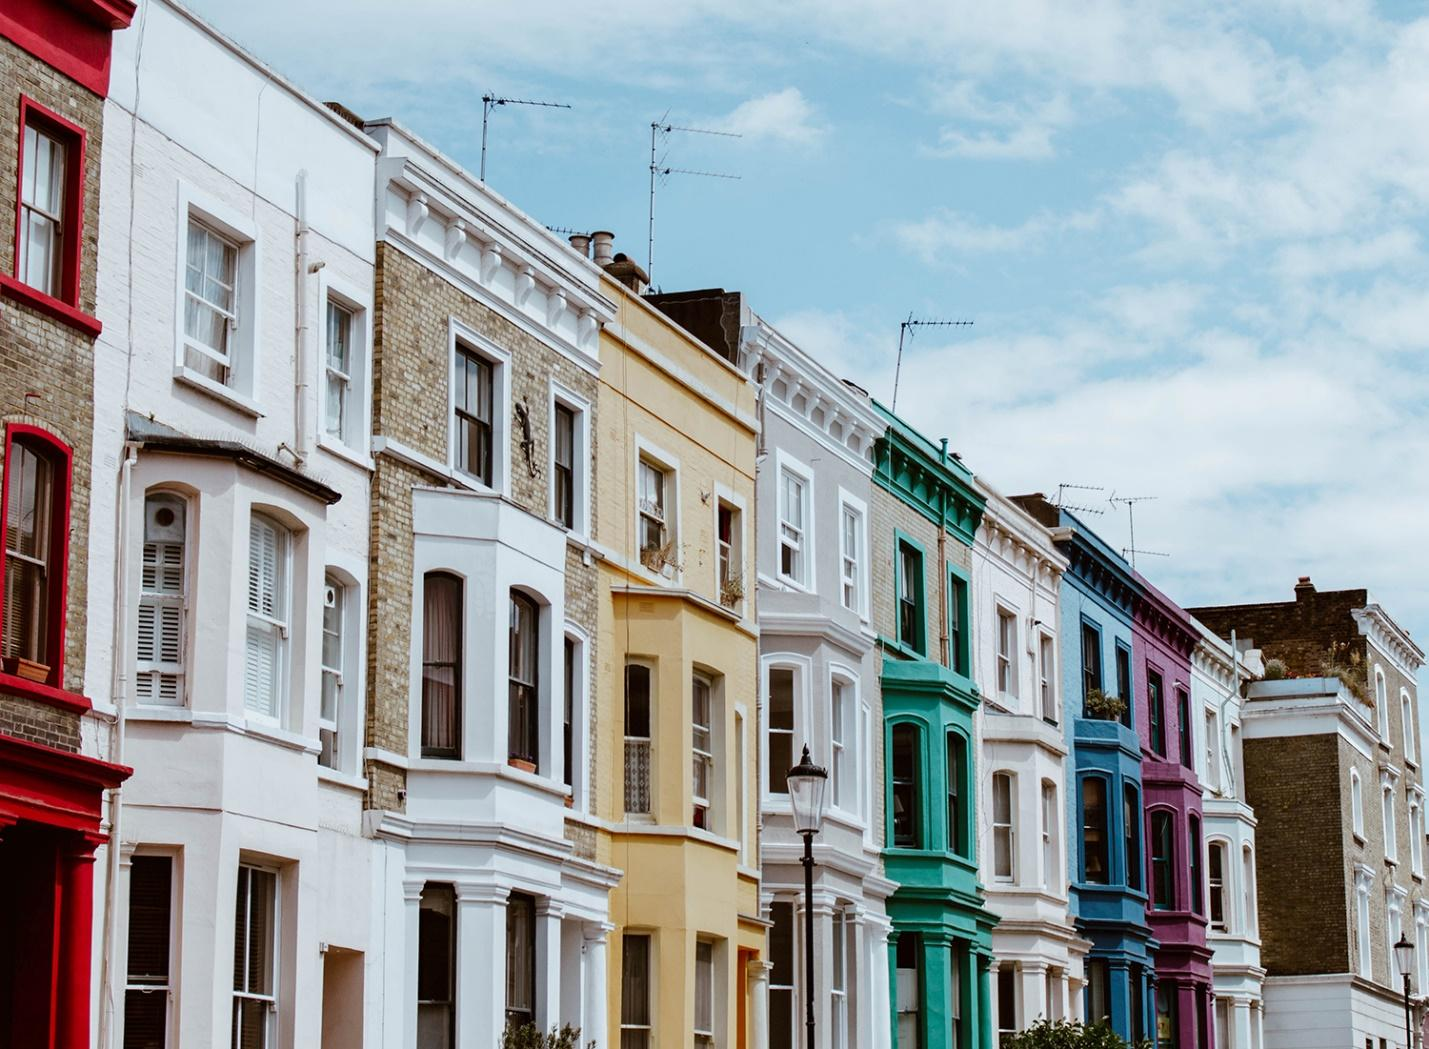 Colorful houses lining a street.